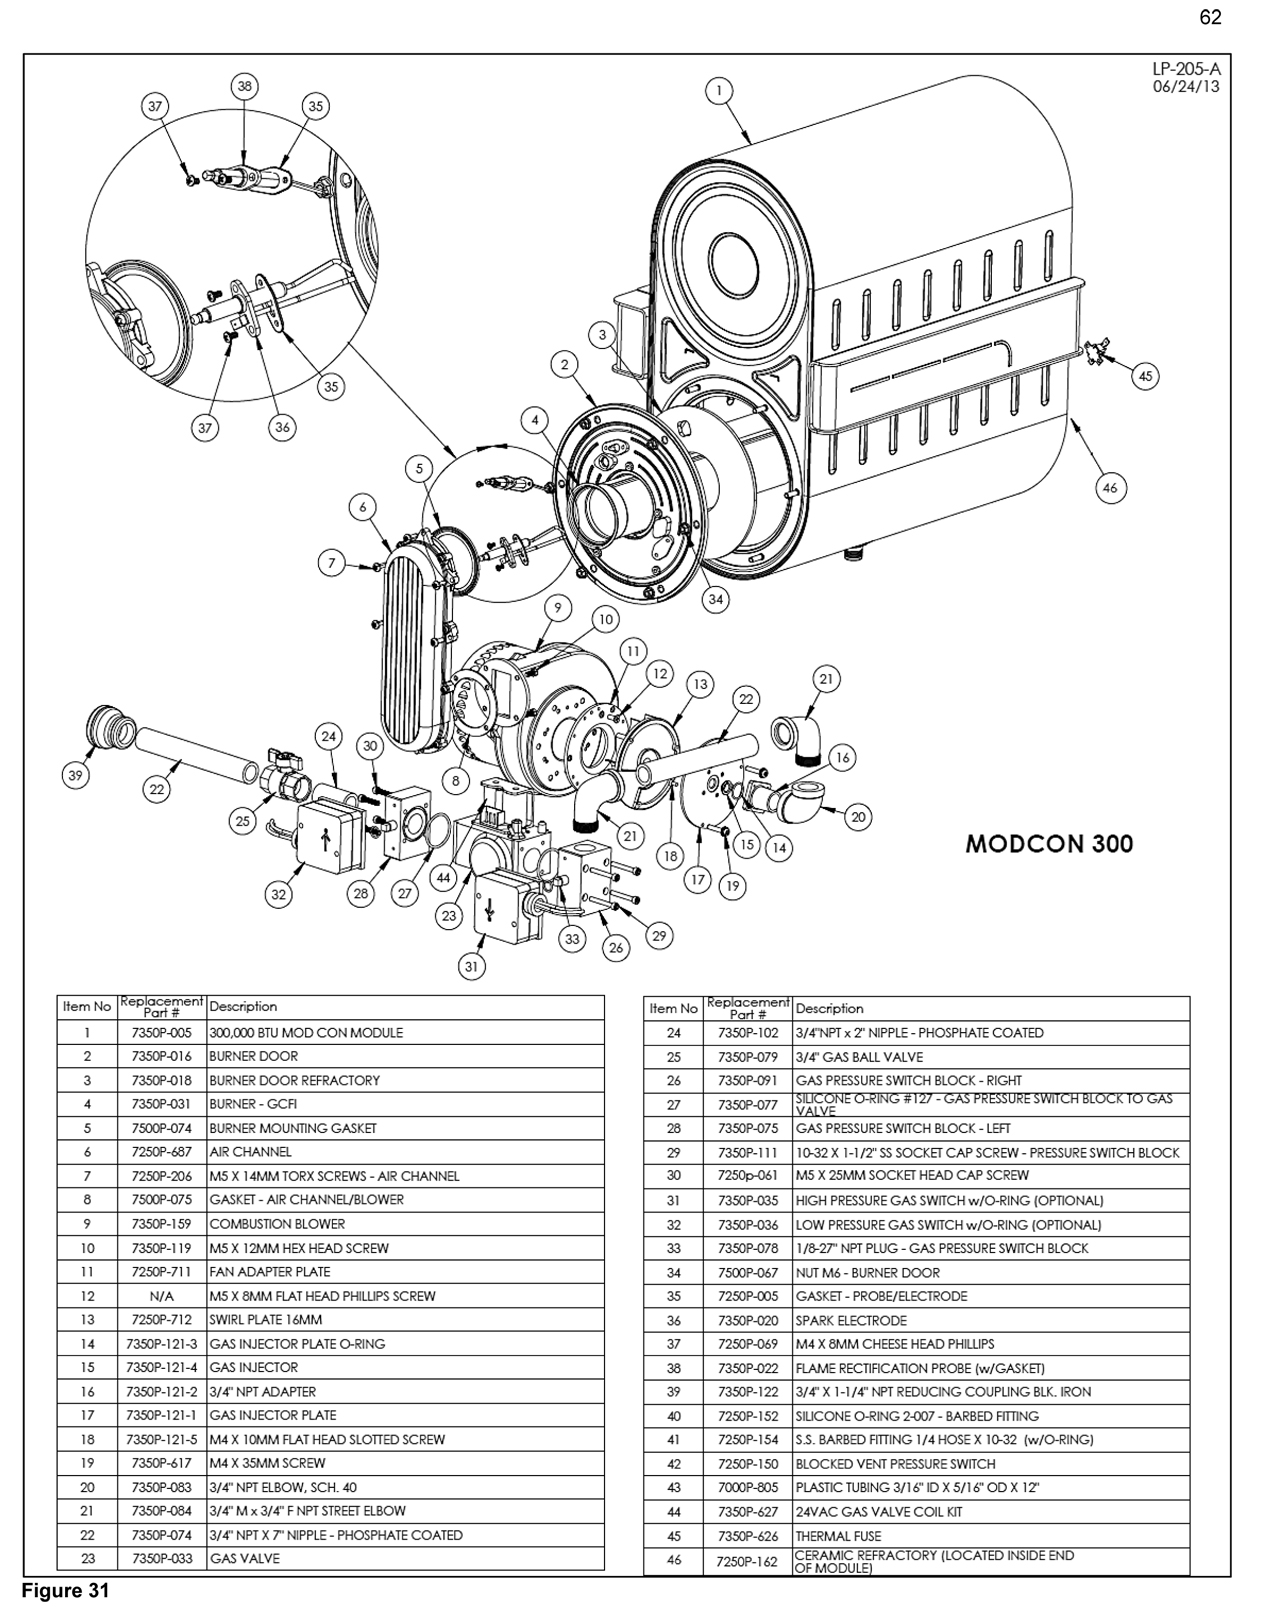 mod con commercial gas boiler - parts drawings